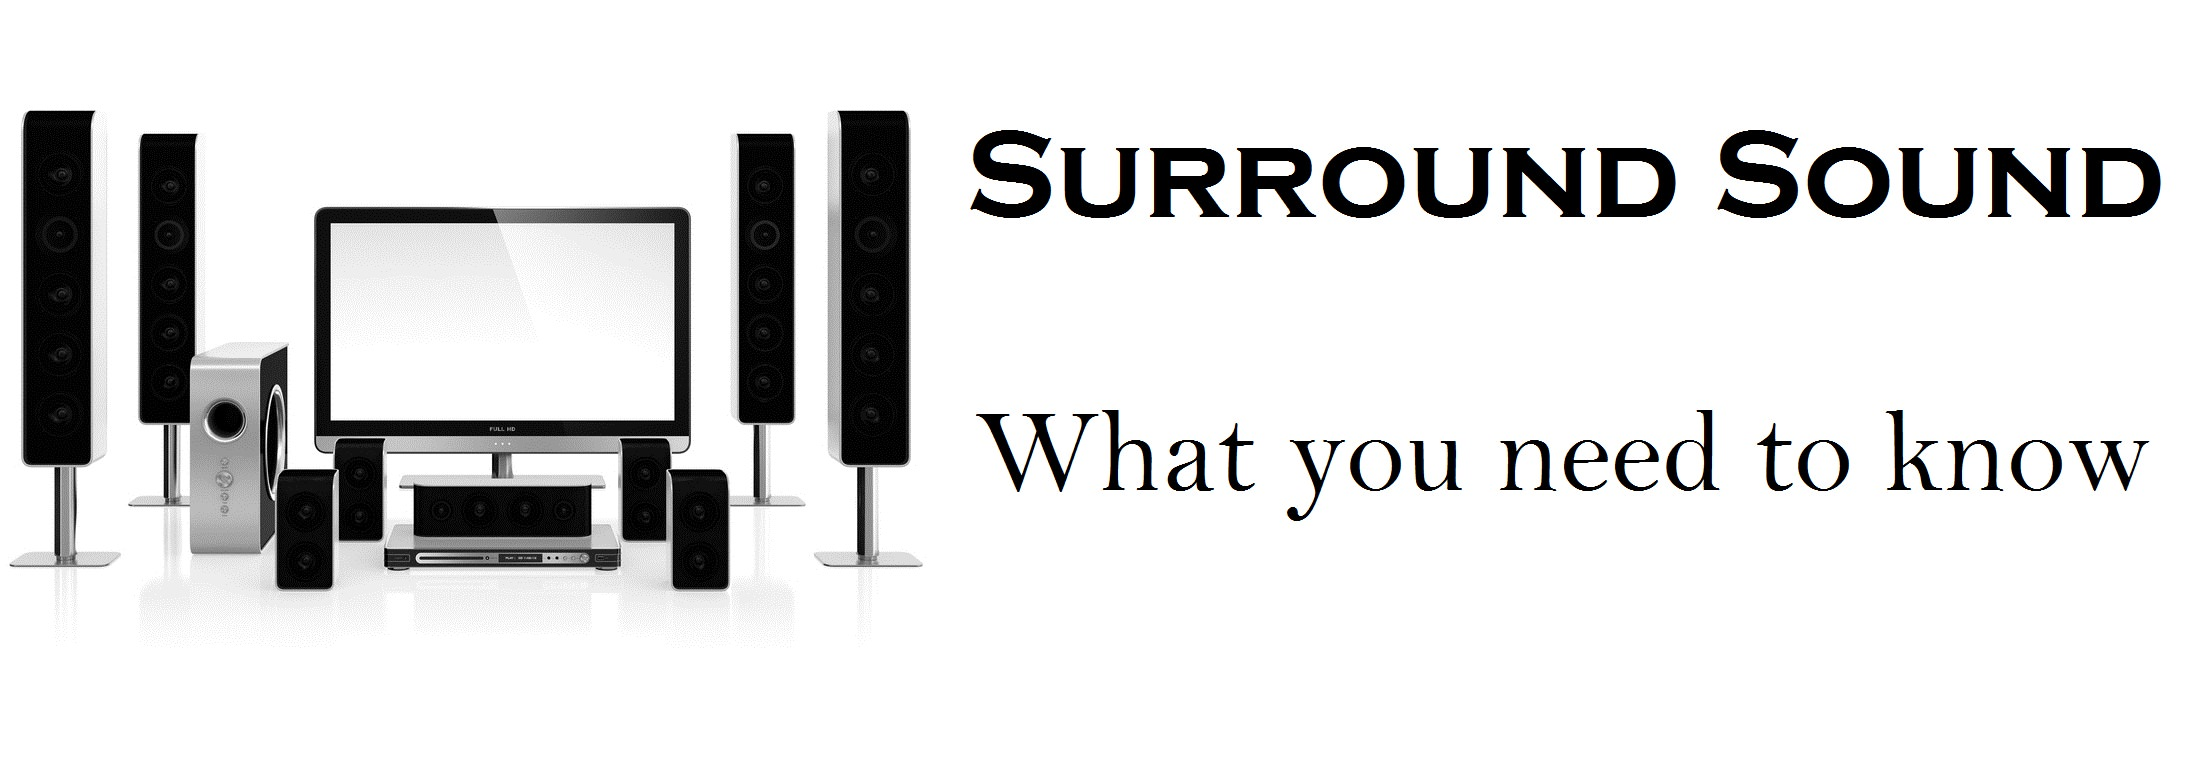 Surround Sound What You Need To Know